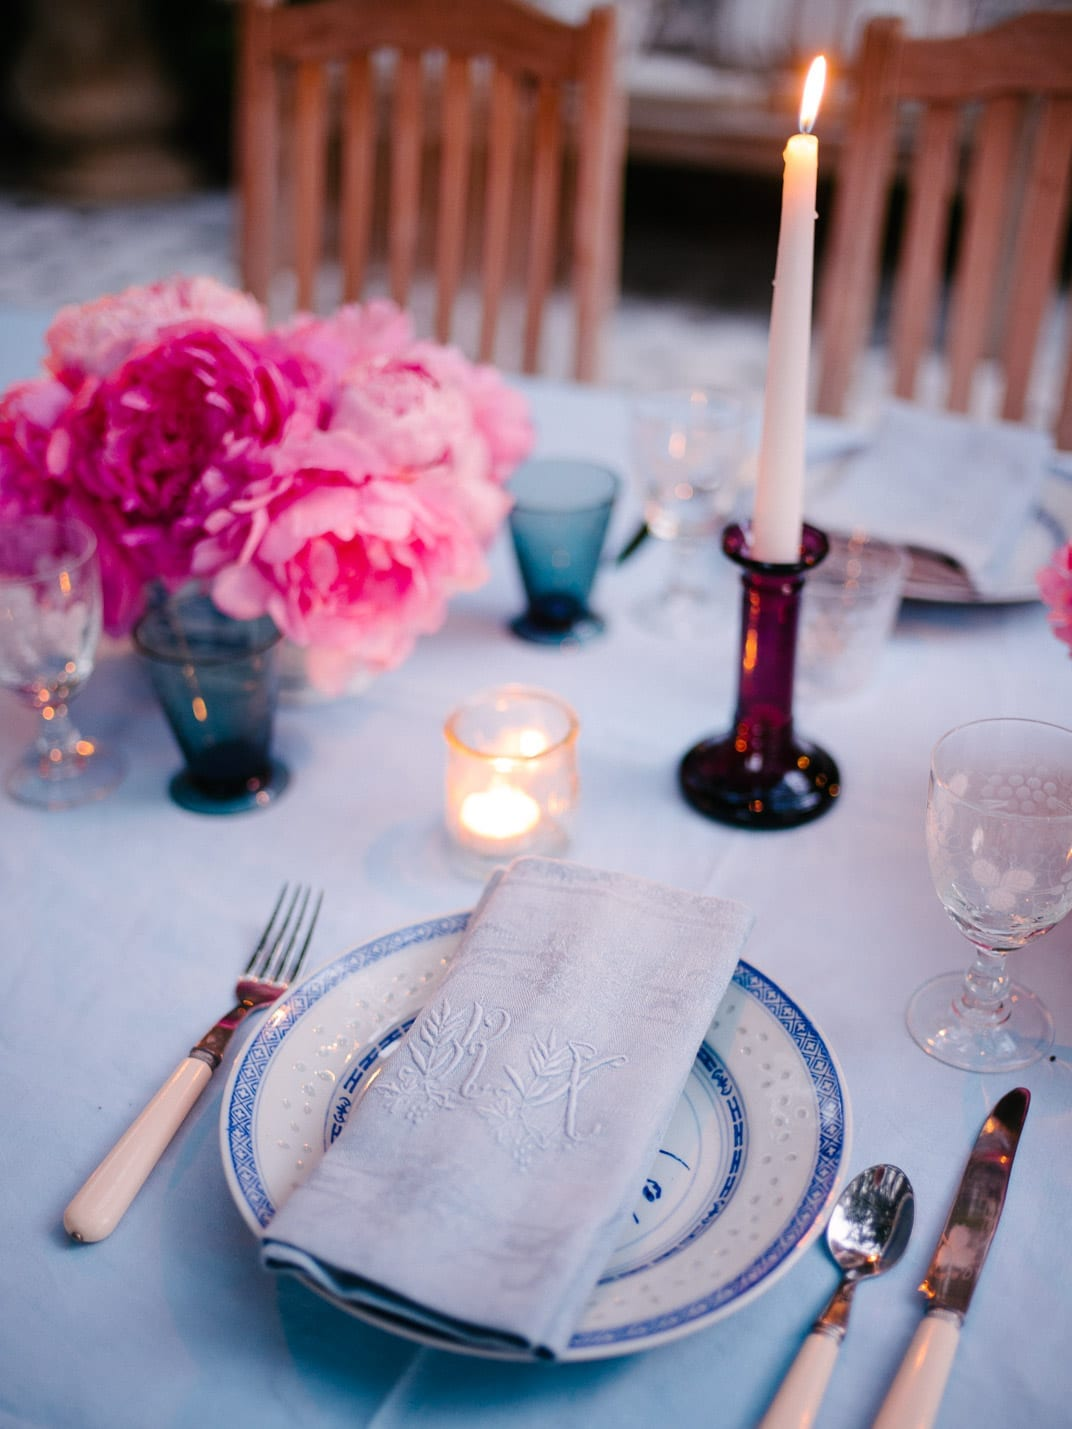 Setting the table from Start to Finish - Lucy Cuneo - Candles!